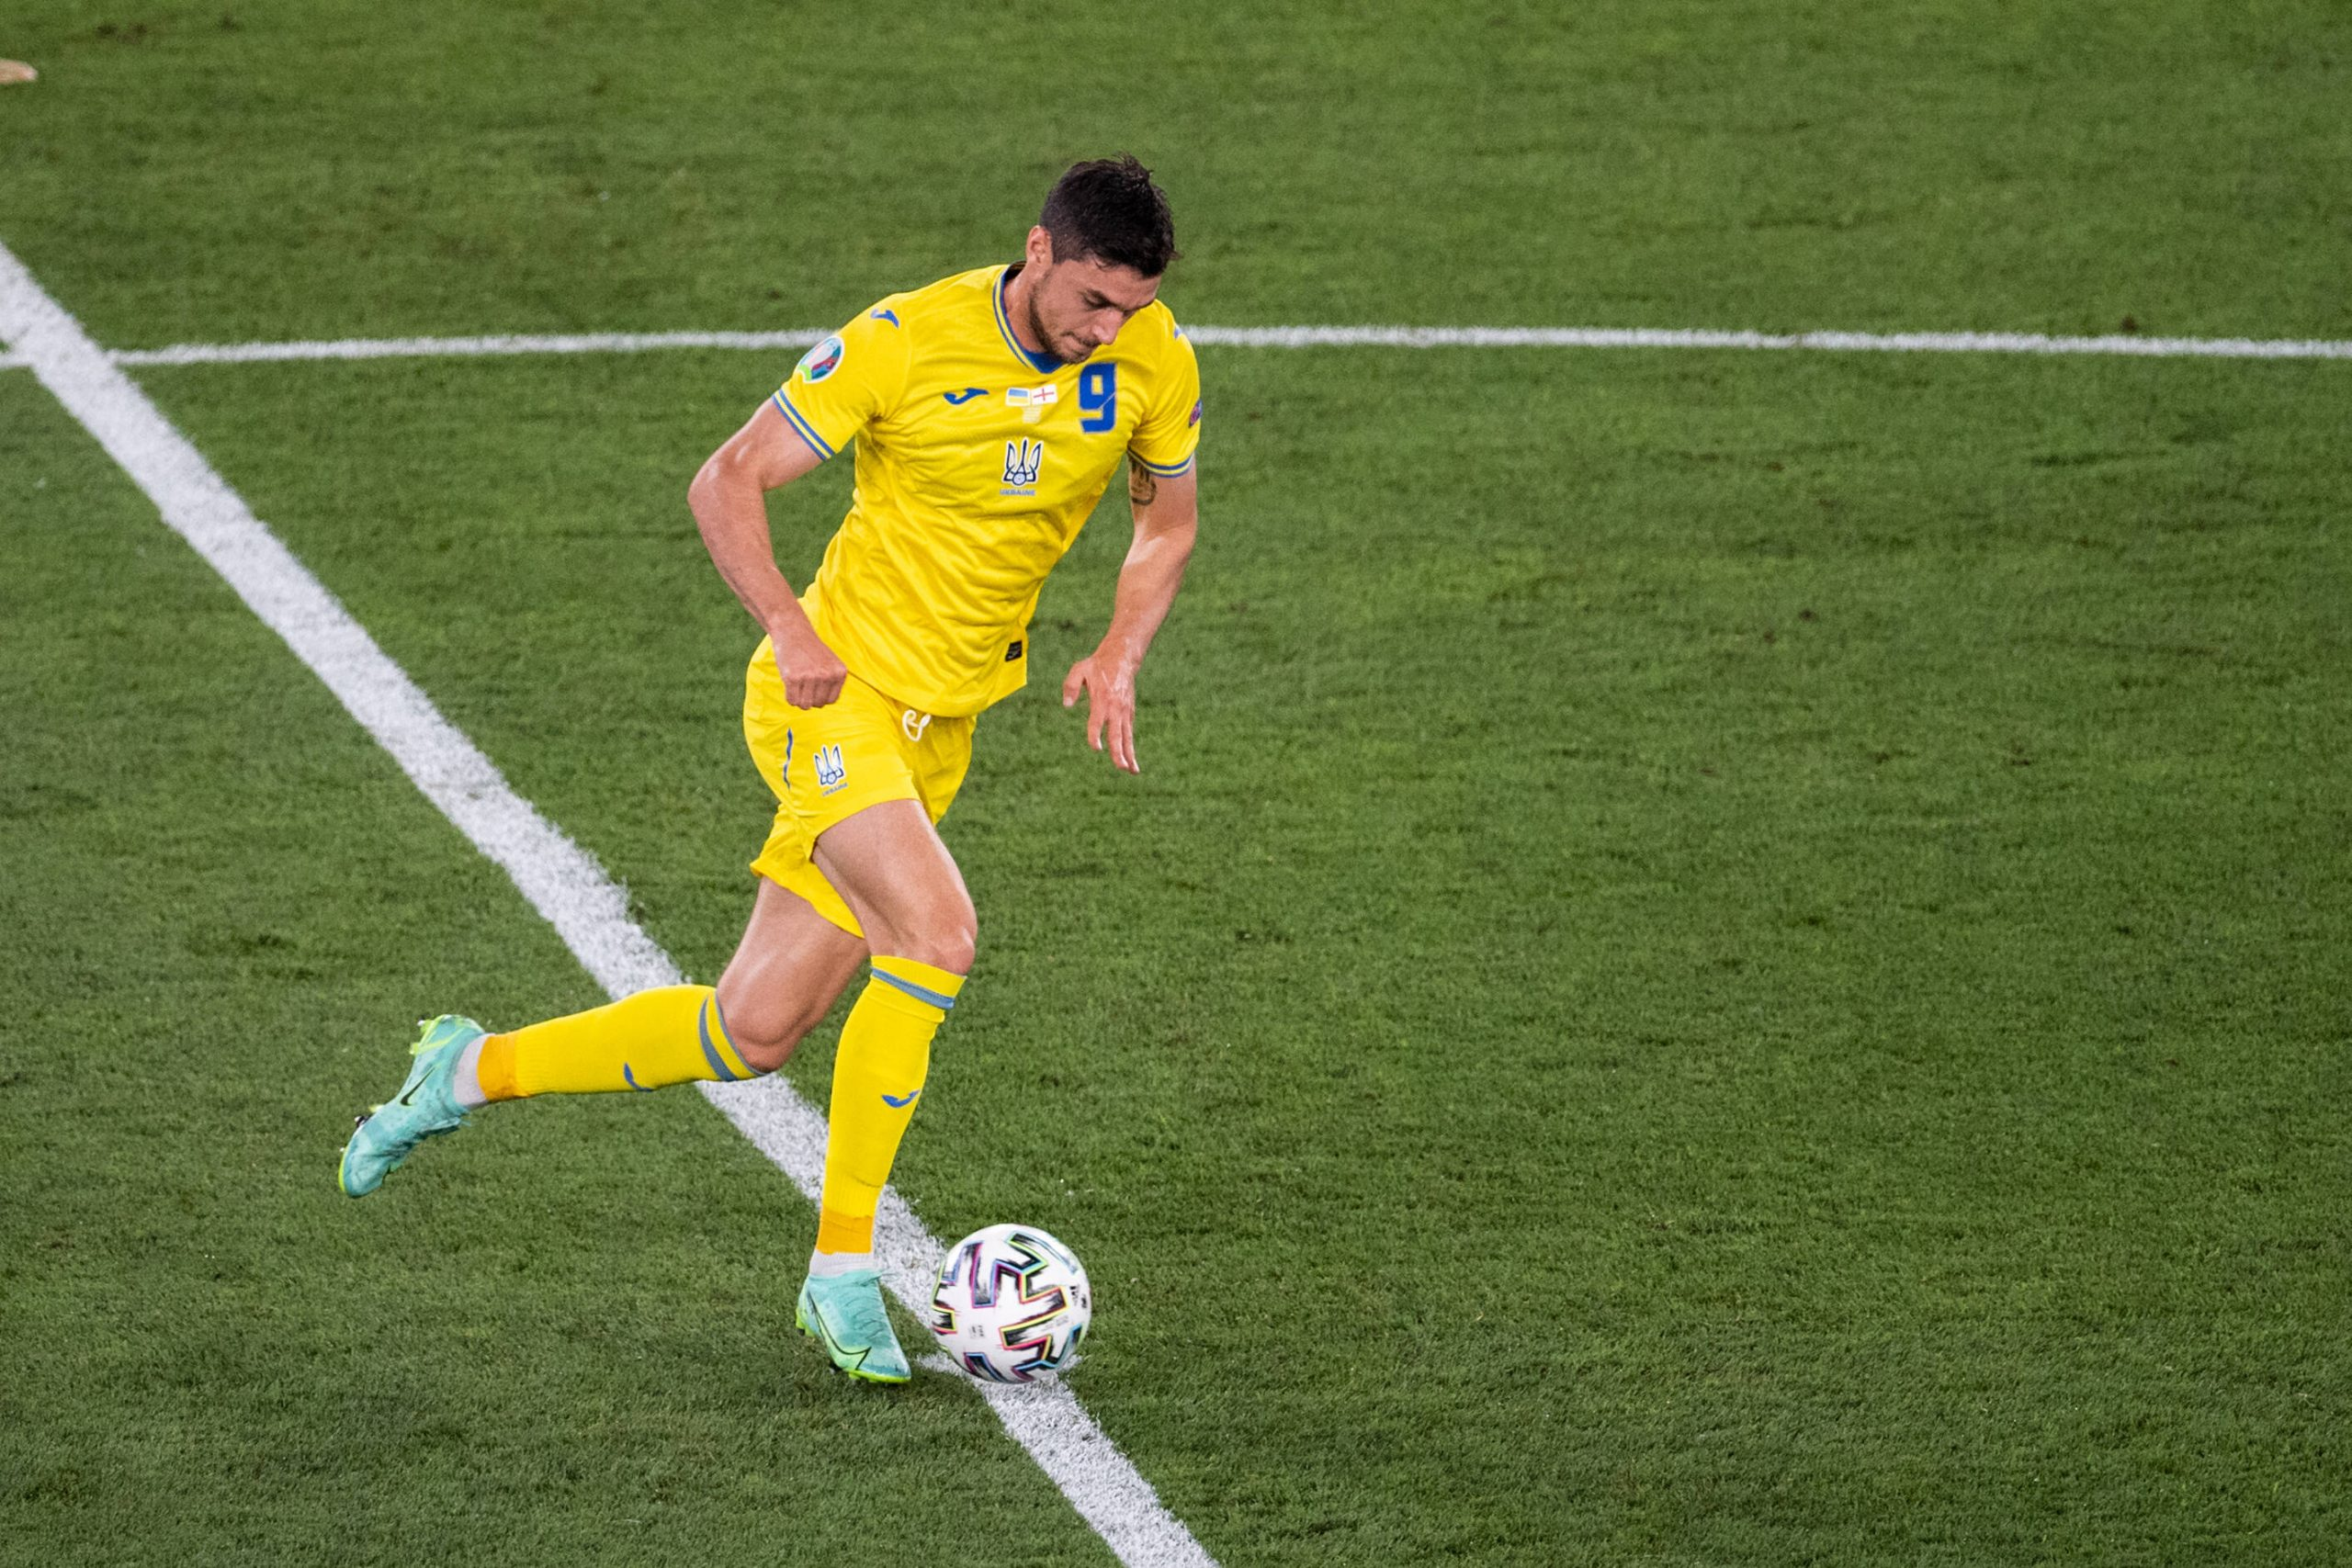 Whose Stock Rose for Ukraine at EURO 2020?